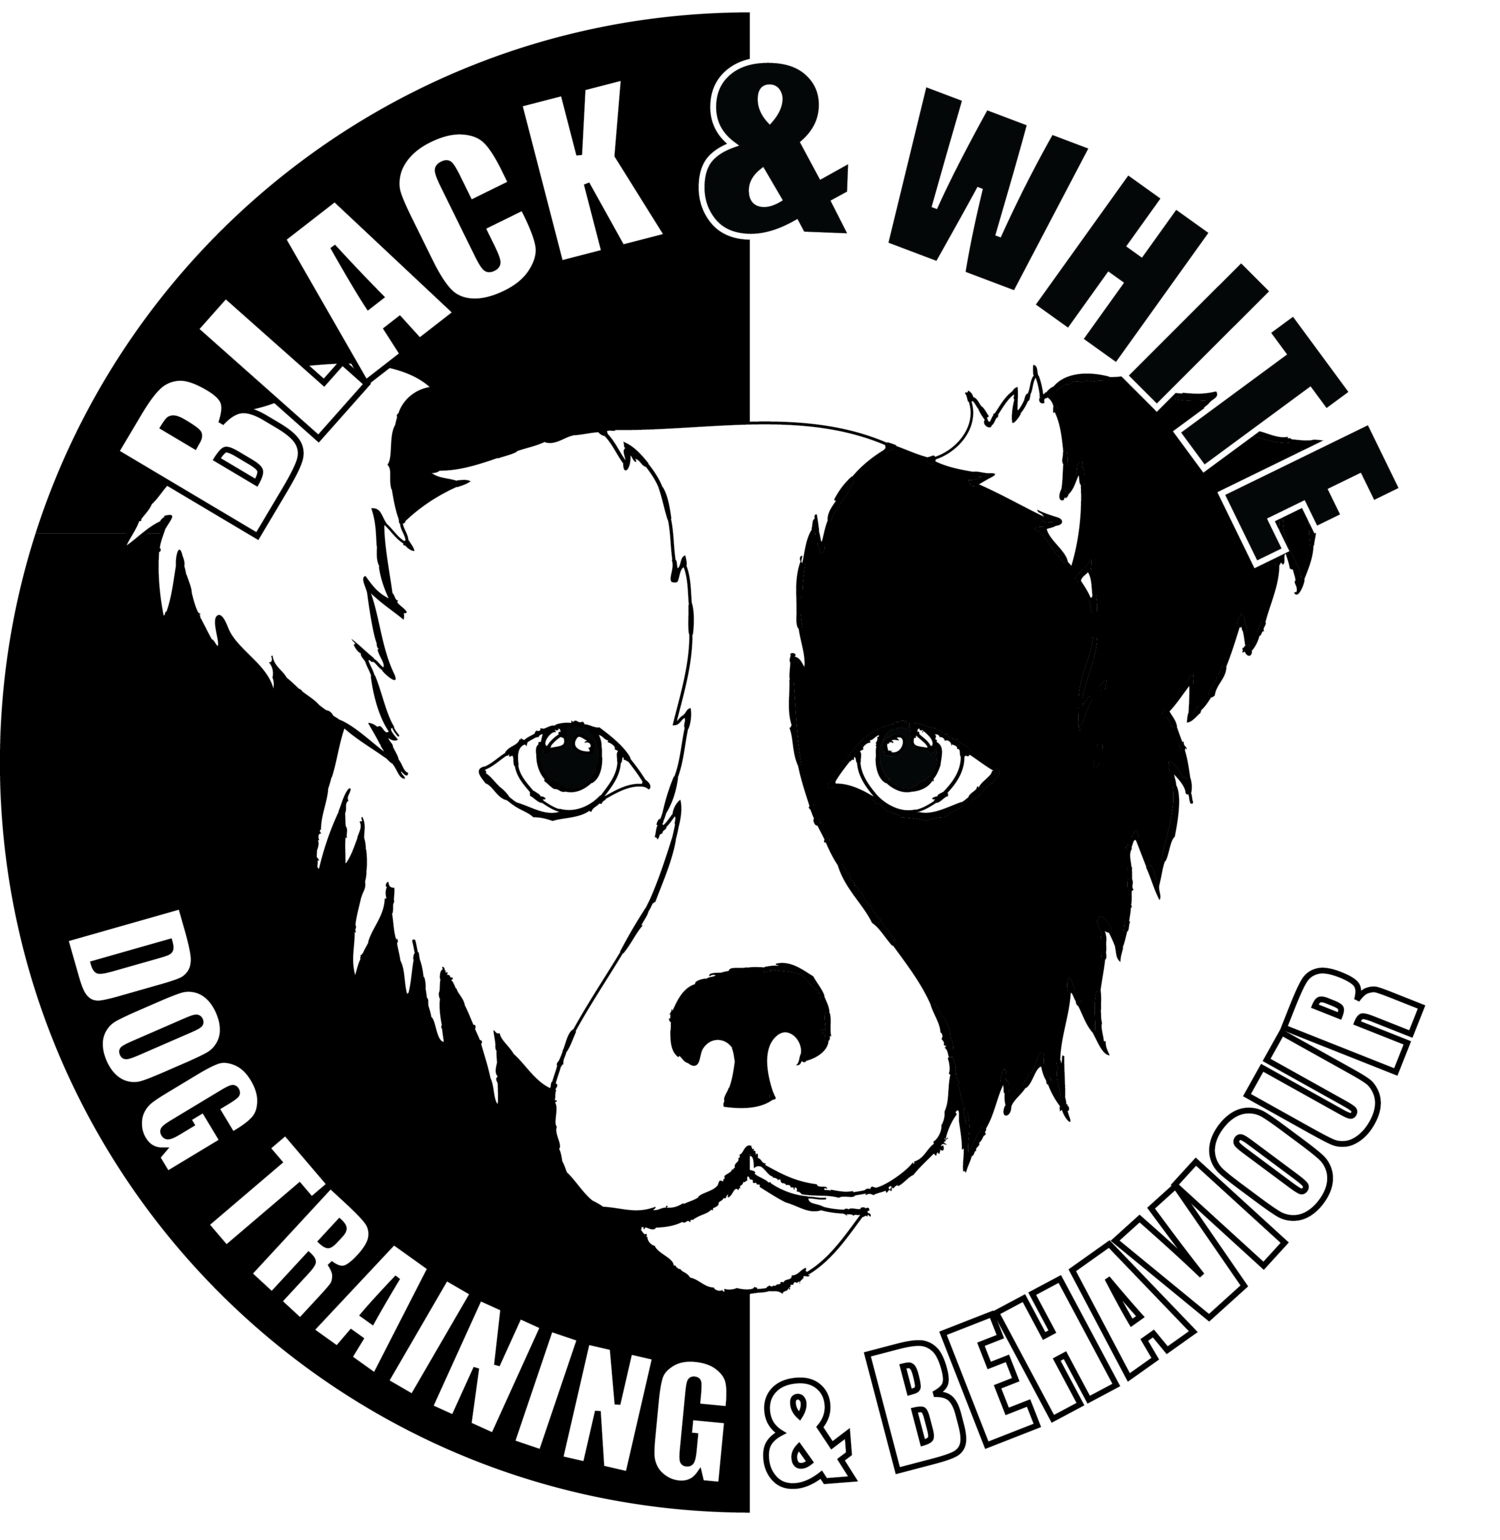 Black & White Dog Training and Behaviour